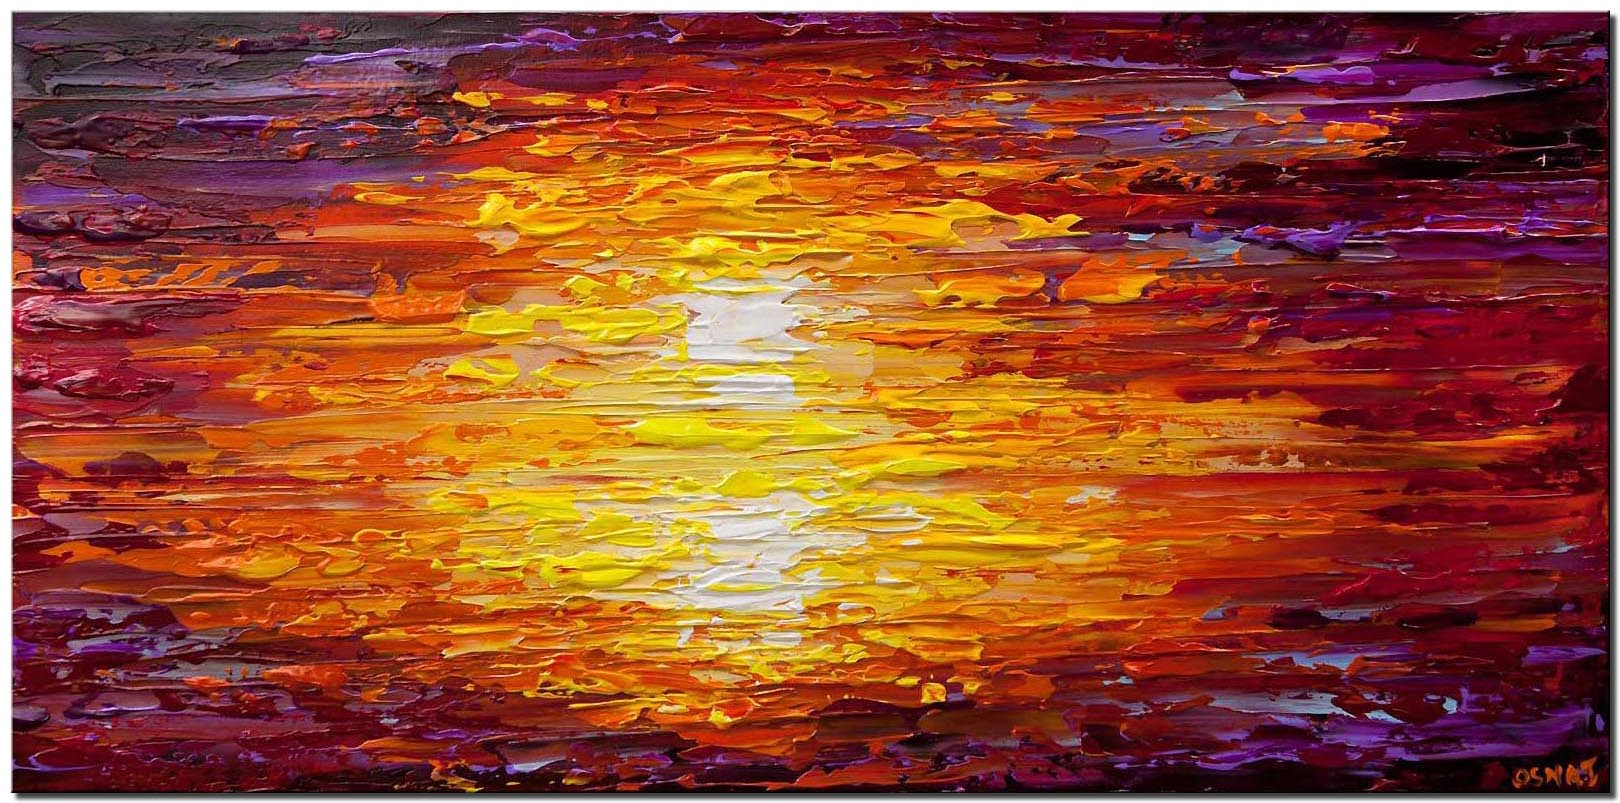 textured sunset abstract painting